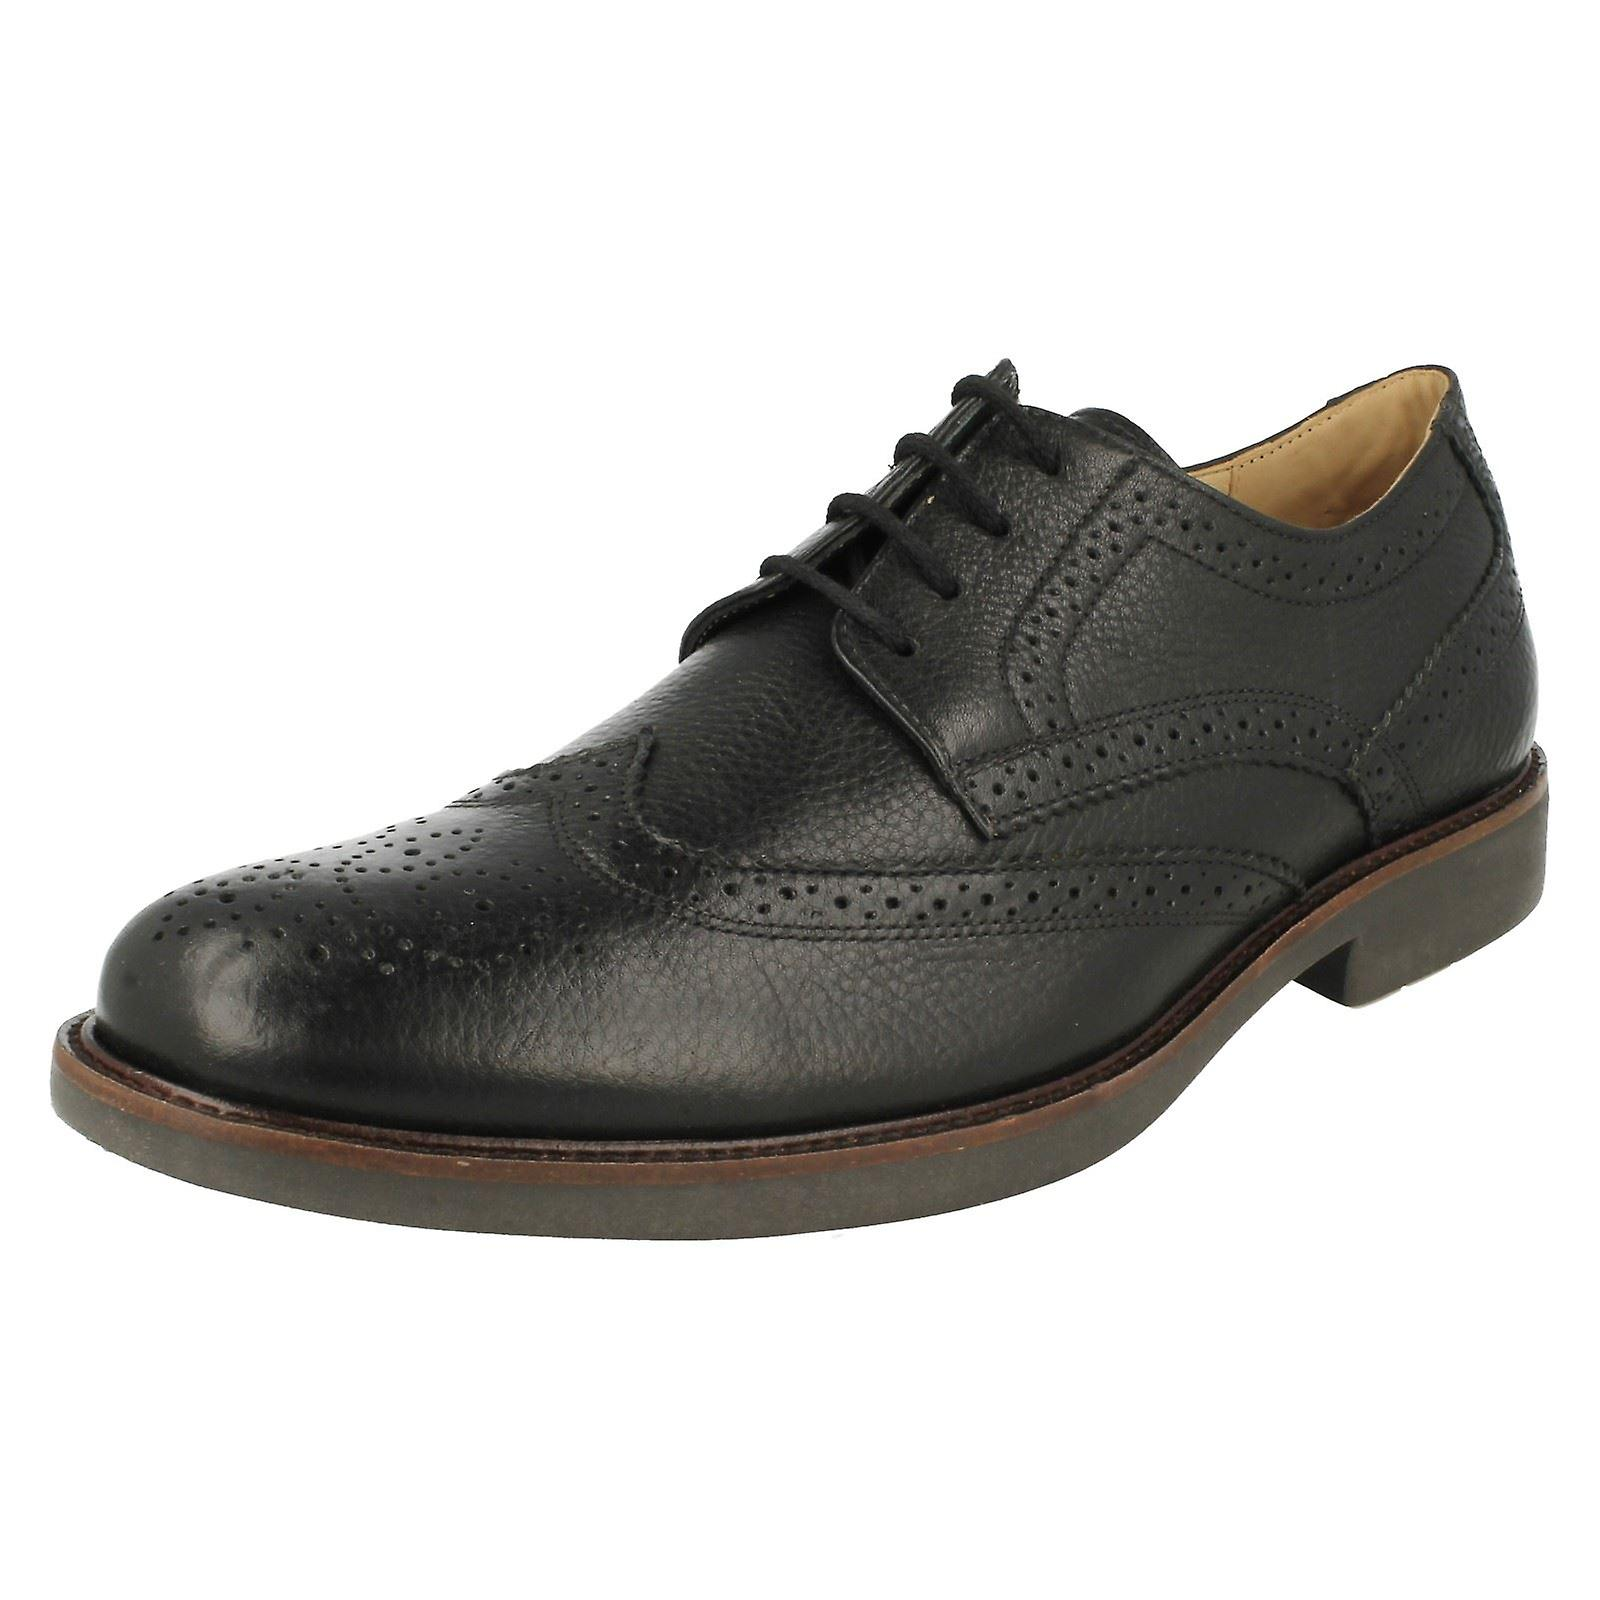 Mens Anatomic Smart Brogue Shoes Styled Shoes Brogue Palma:Men/Women:On Sale 214673